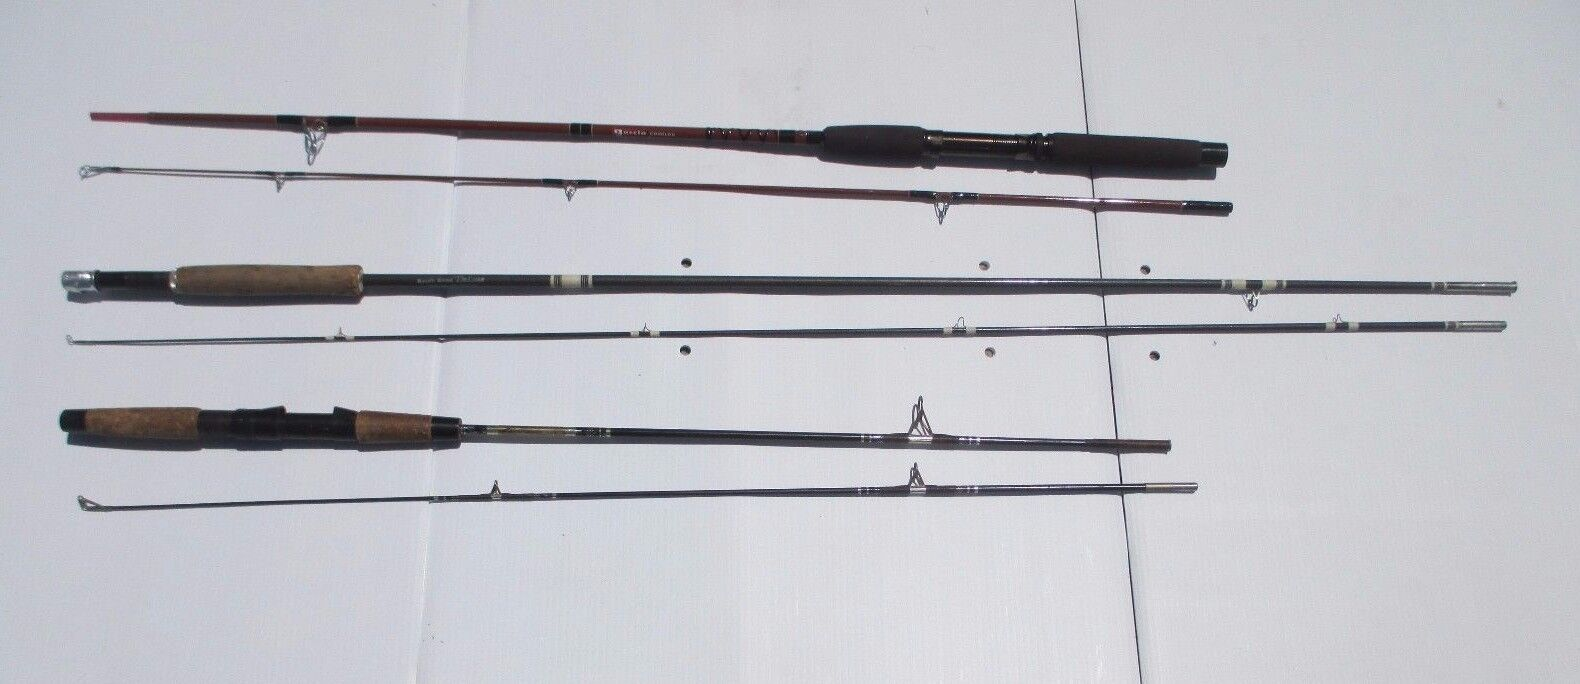 Lot of 3 Fishing Rods - Garcia Conolon, Garcia Kingfisher, & South Bend Deluxe